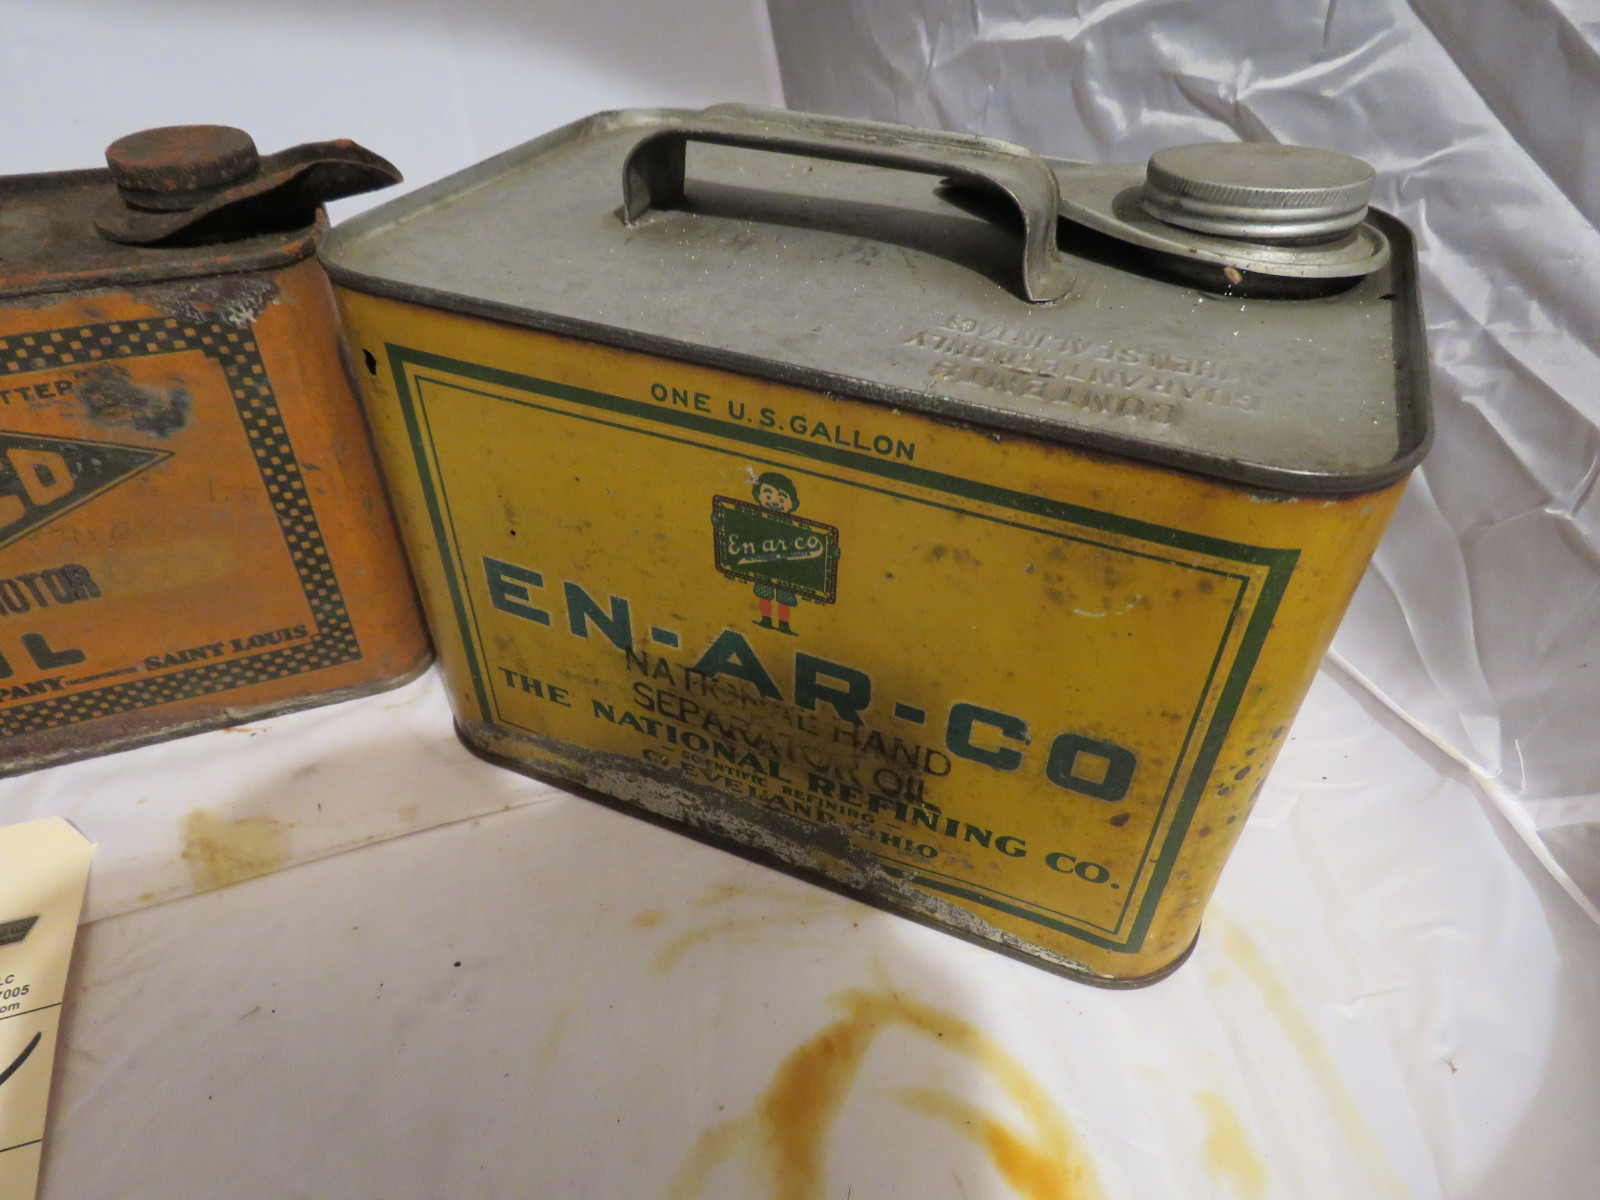 Vintage Oil Can Grouping - Image 4